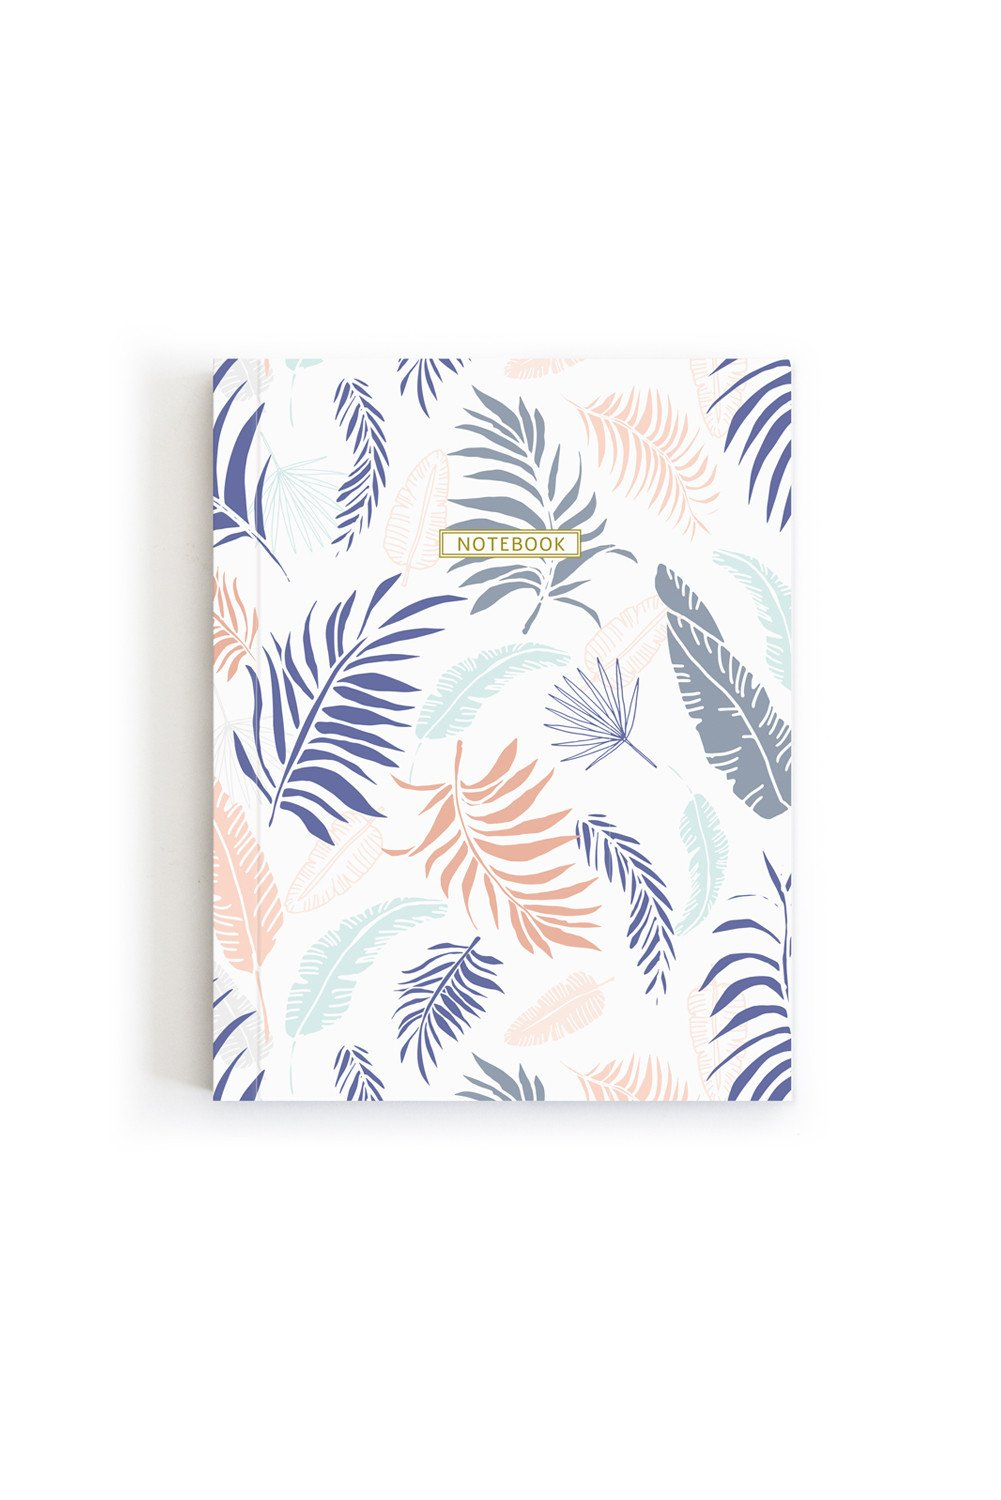 Mini Notebook - Leafs